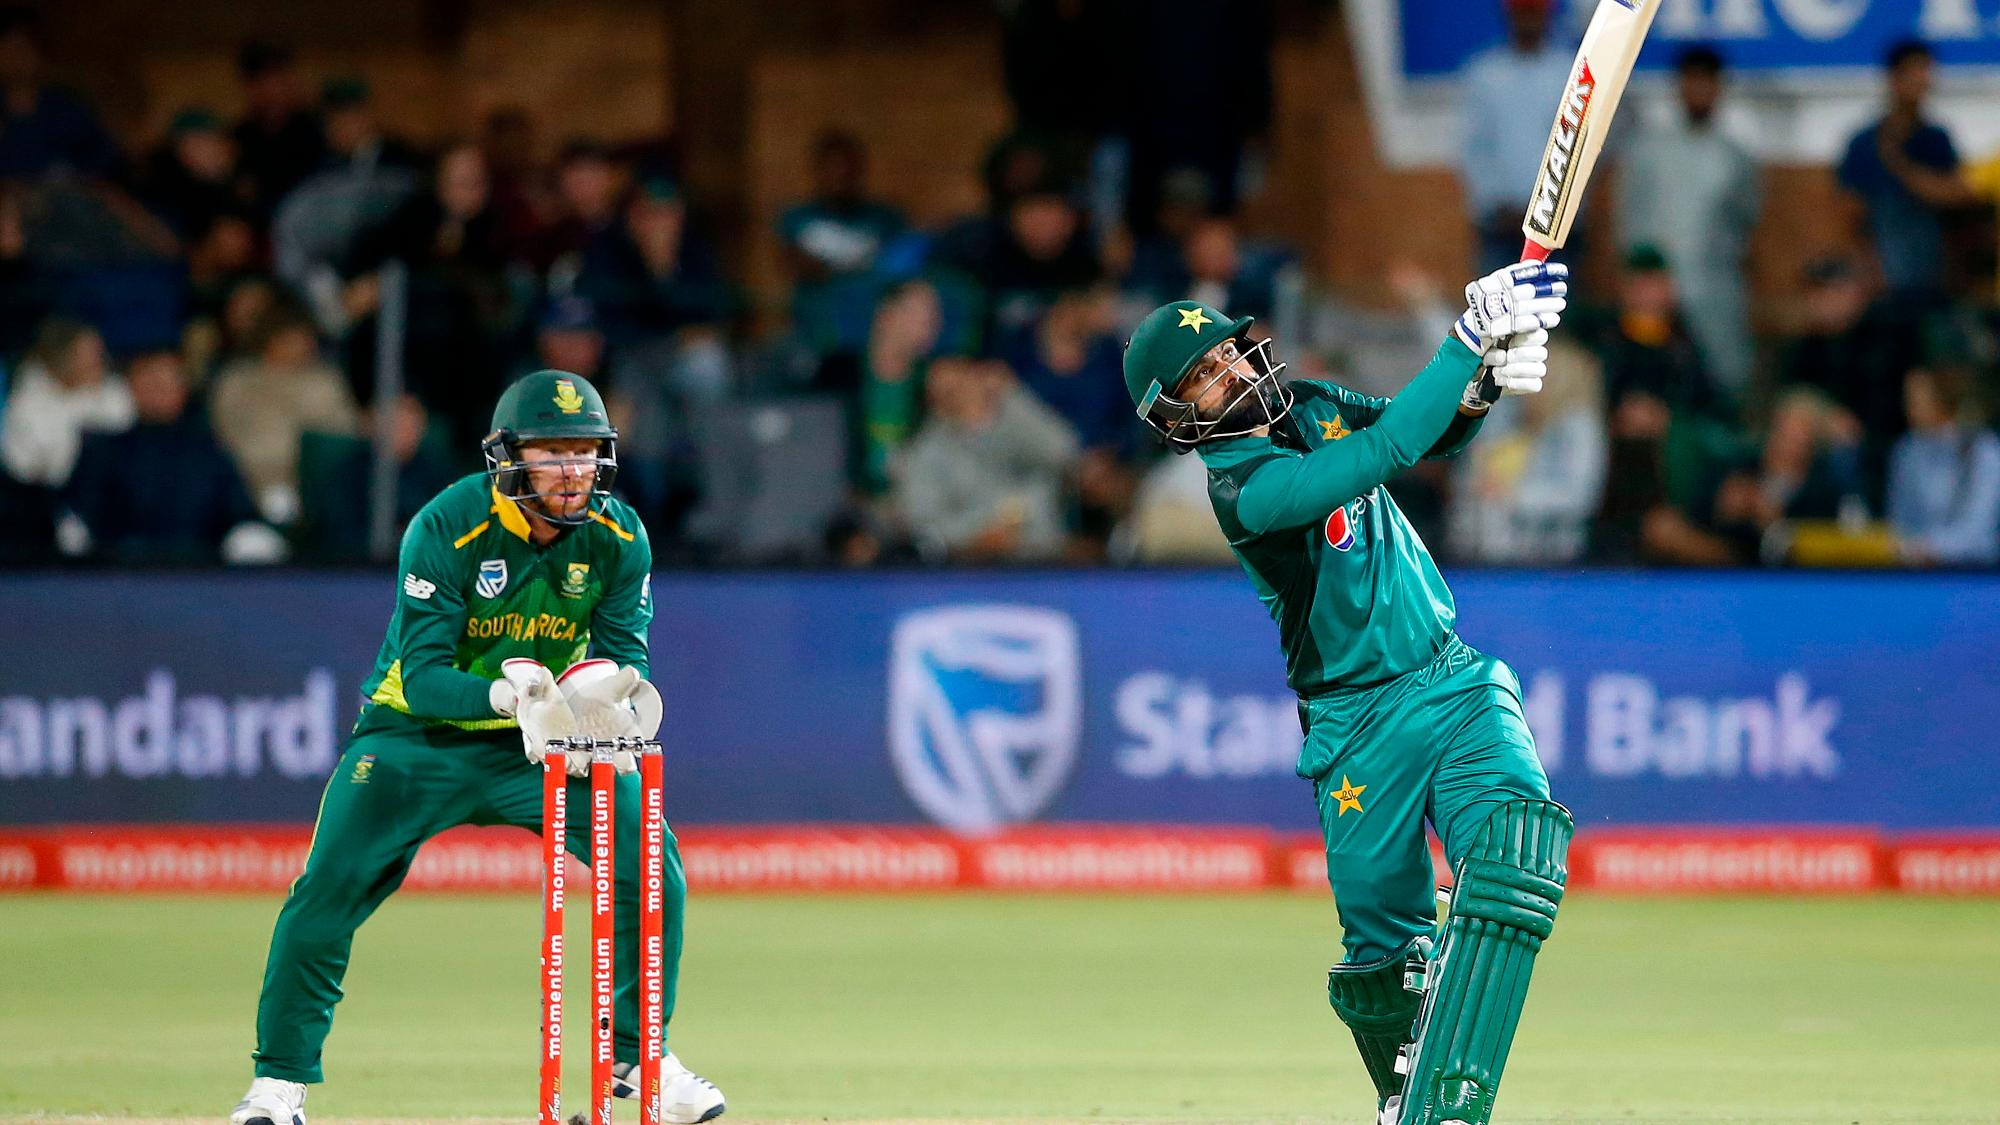 Ice-cool Hafeez seals thriller as Pakistan claim 1-0 lead over South Africa